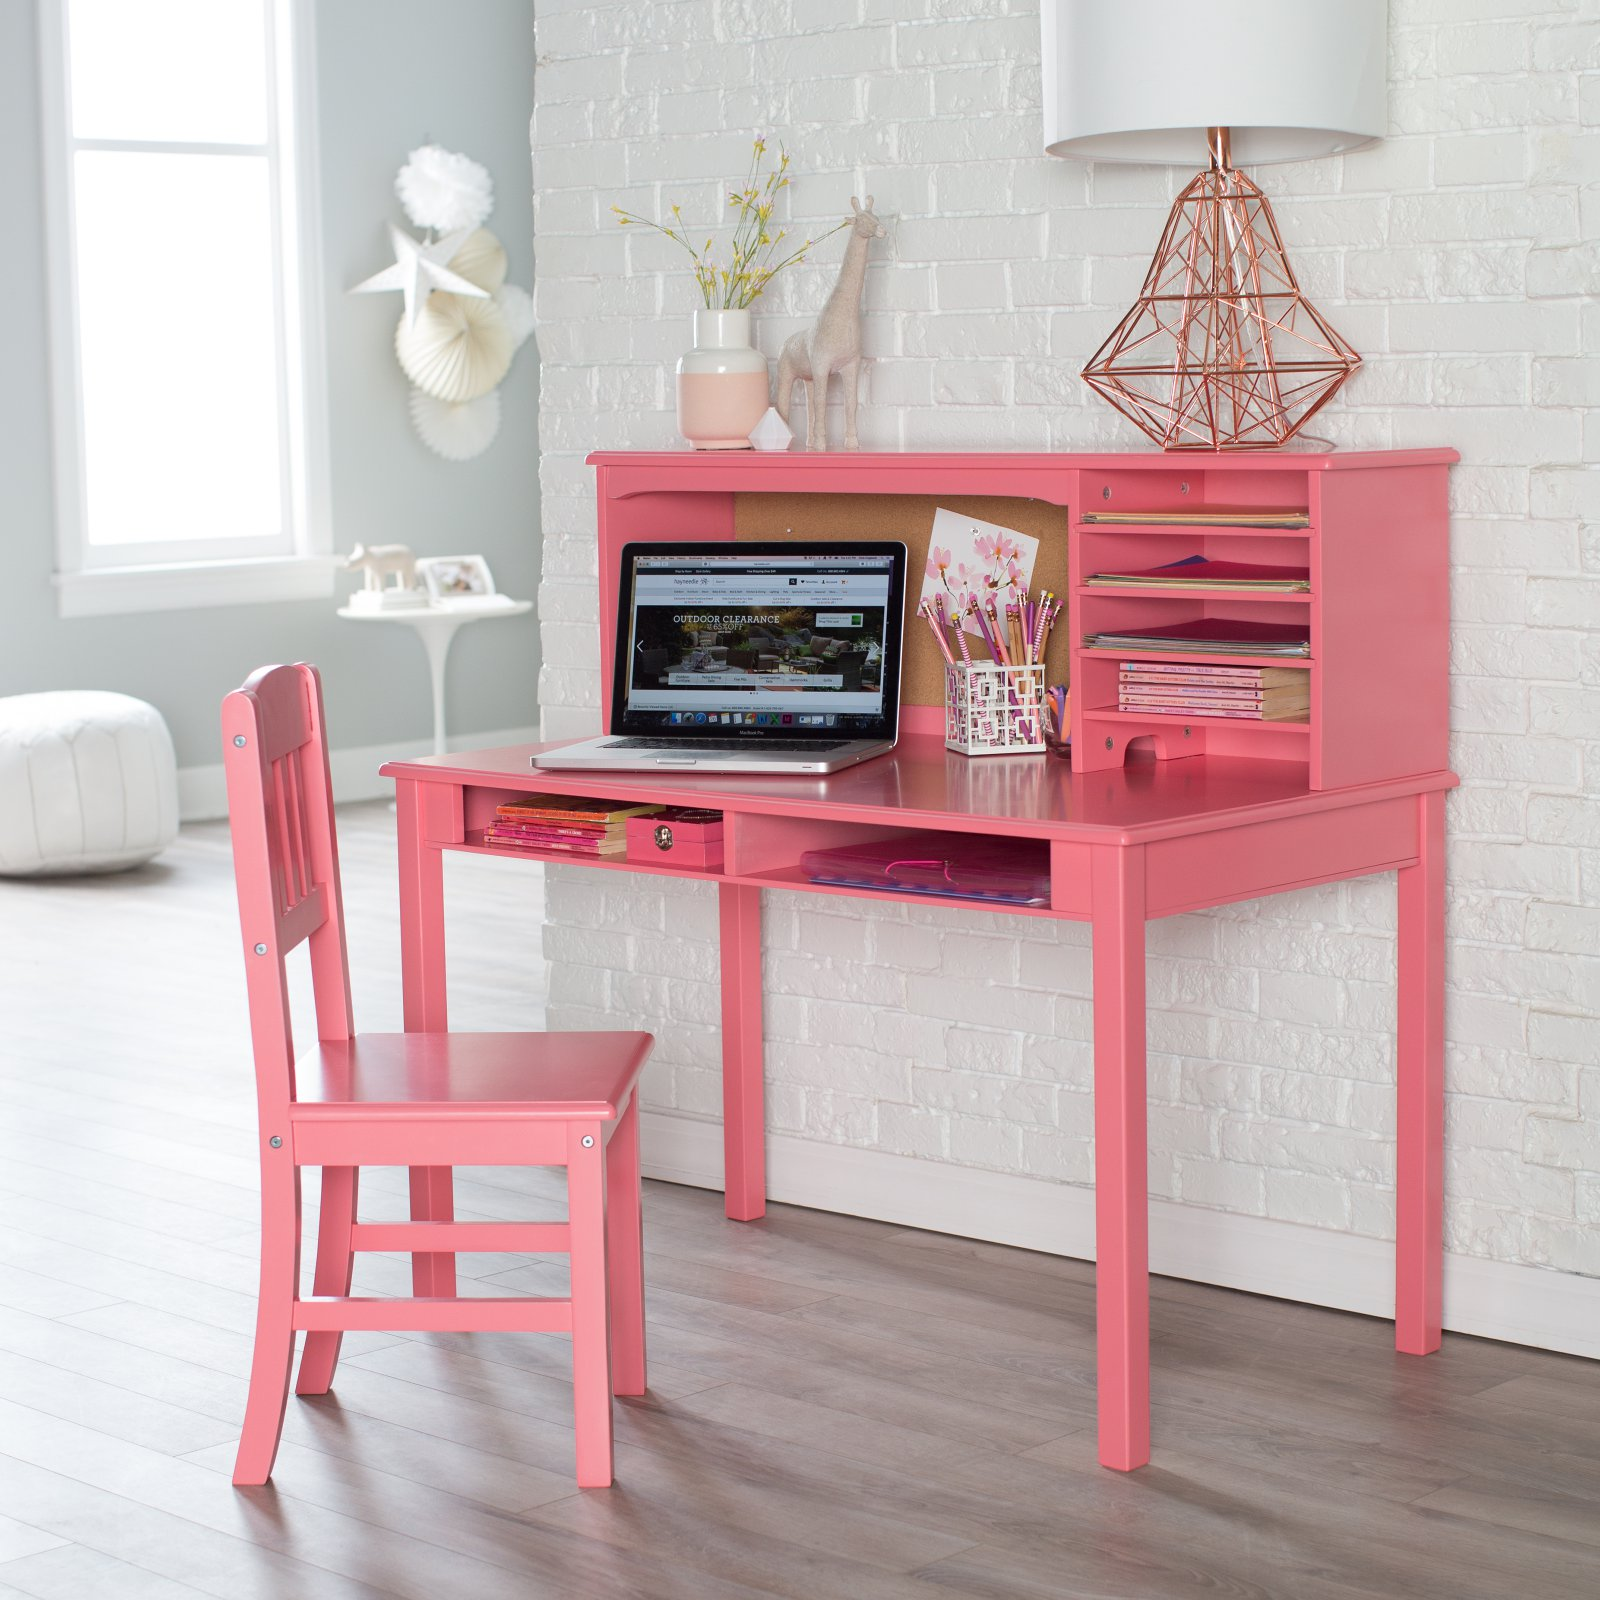 Guidecraft Media Desk & Chair Set - Coral